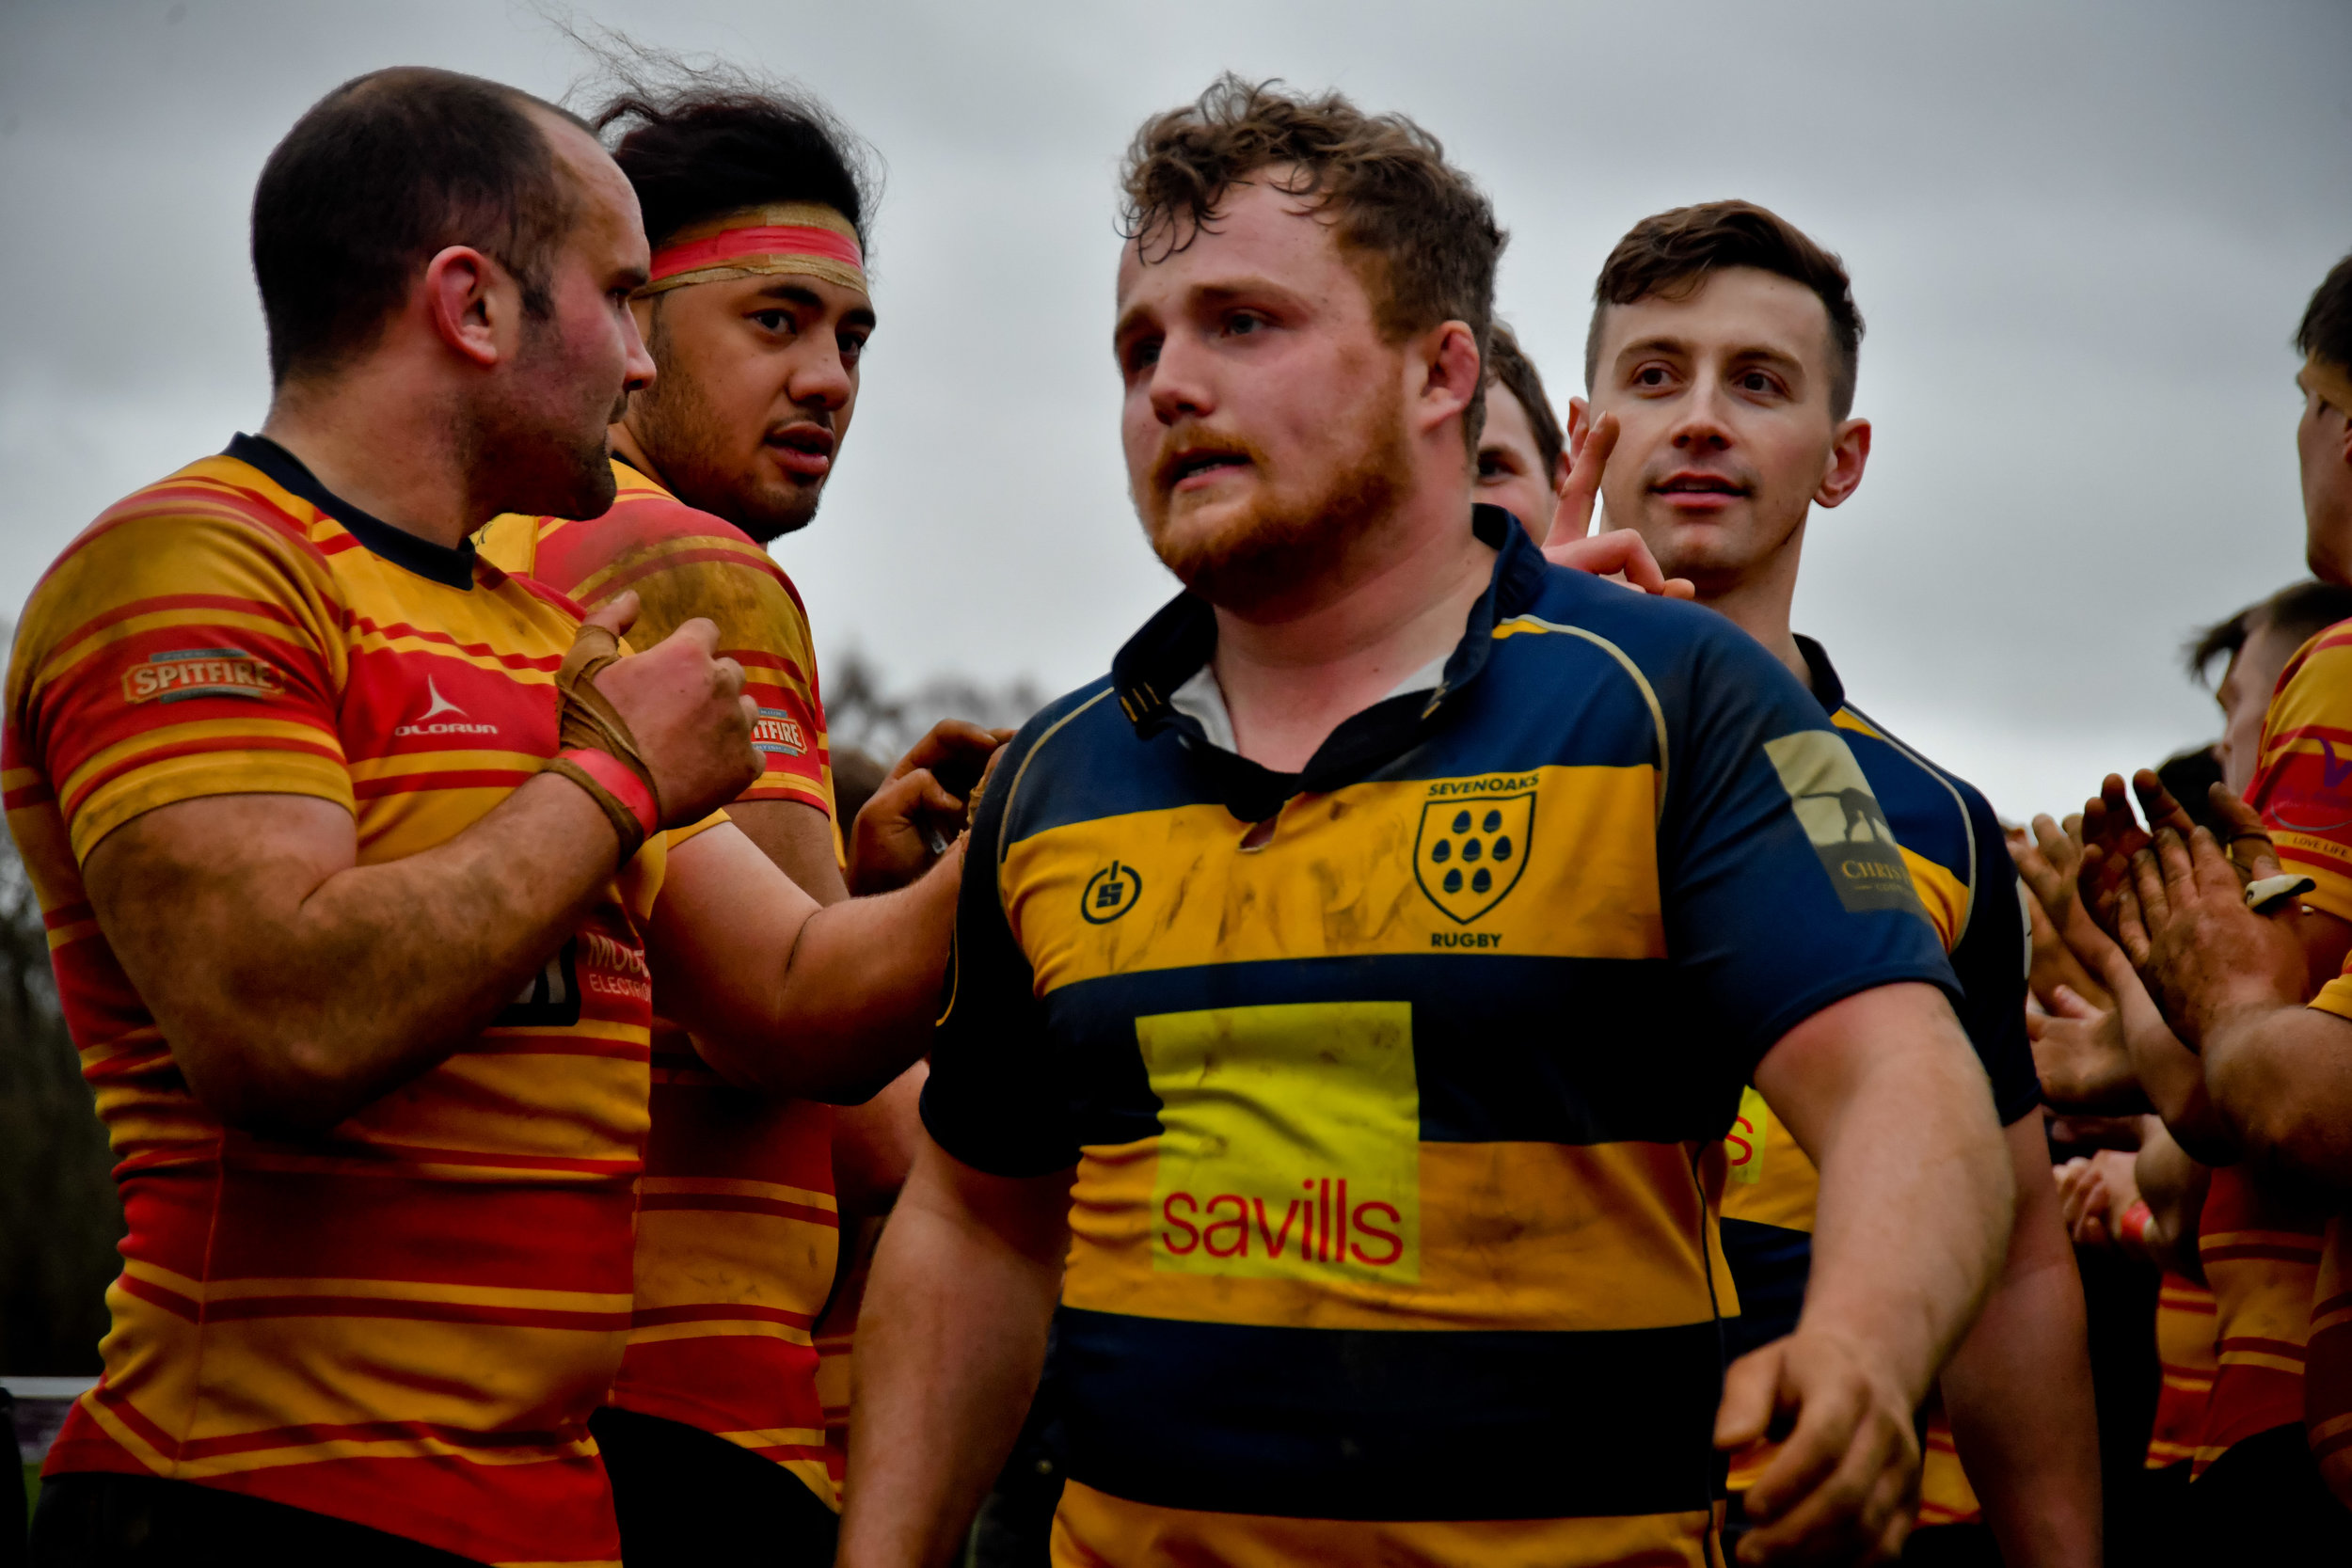 Scotty Sedgwick scored a try on his 100th appearance for Oaks 1st XV.  Photo credit: David Purday